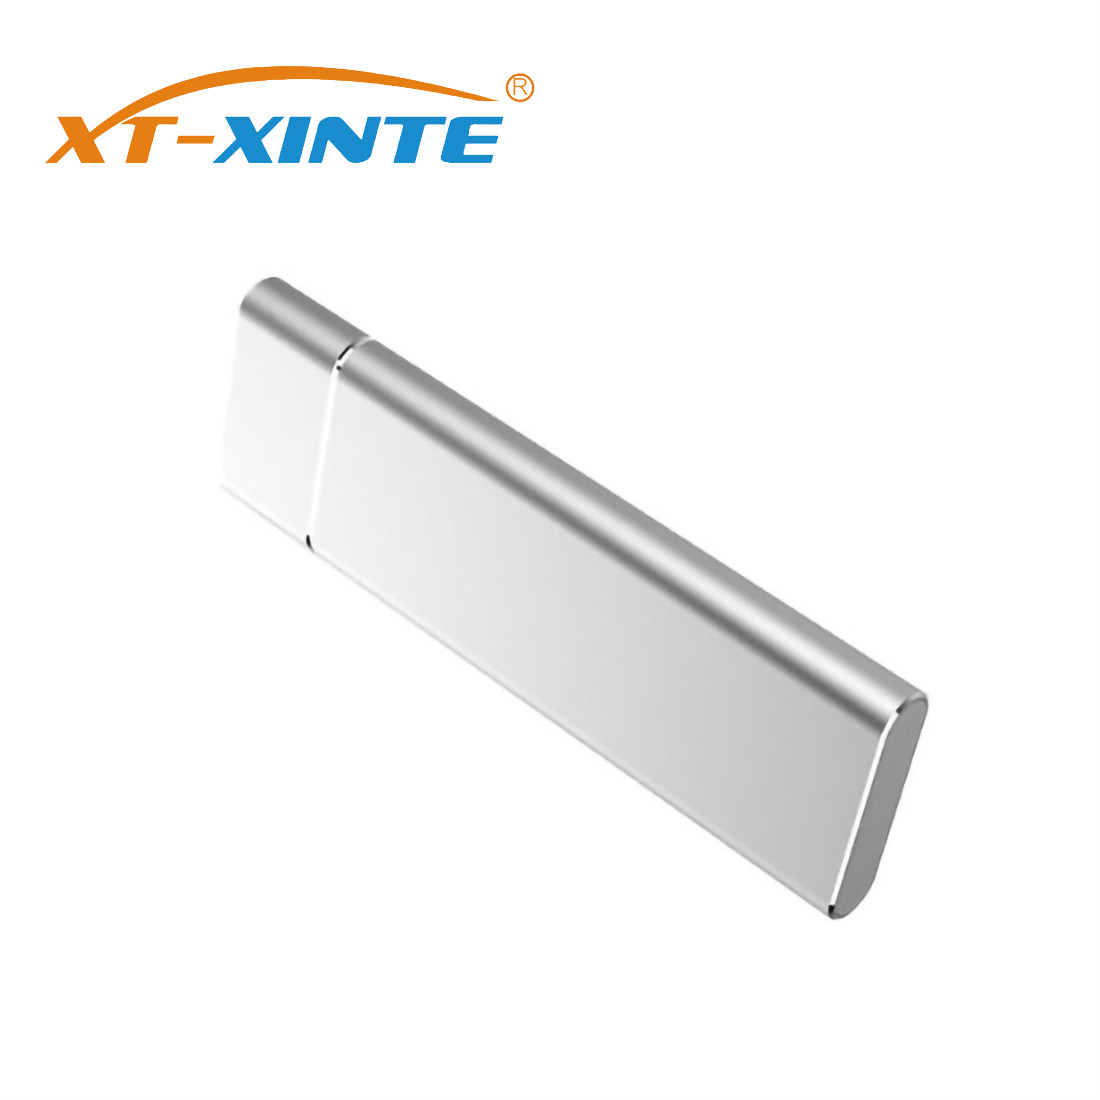 XT-XINTE USB 3.1 To M.2 NGFF SSD Mobile Hard Disk Box Adapter Card For NGFF 2230/2242/2260/2280 SSD External Enclosure Case